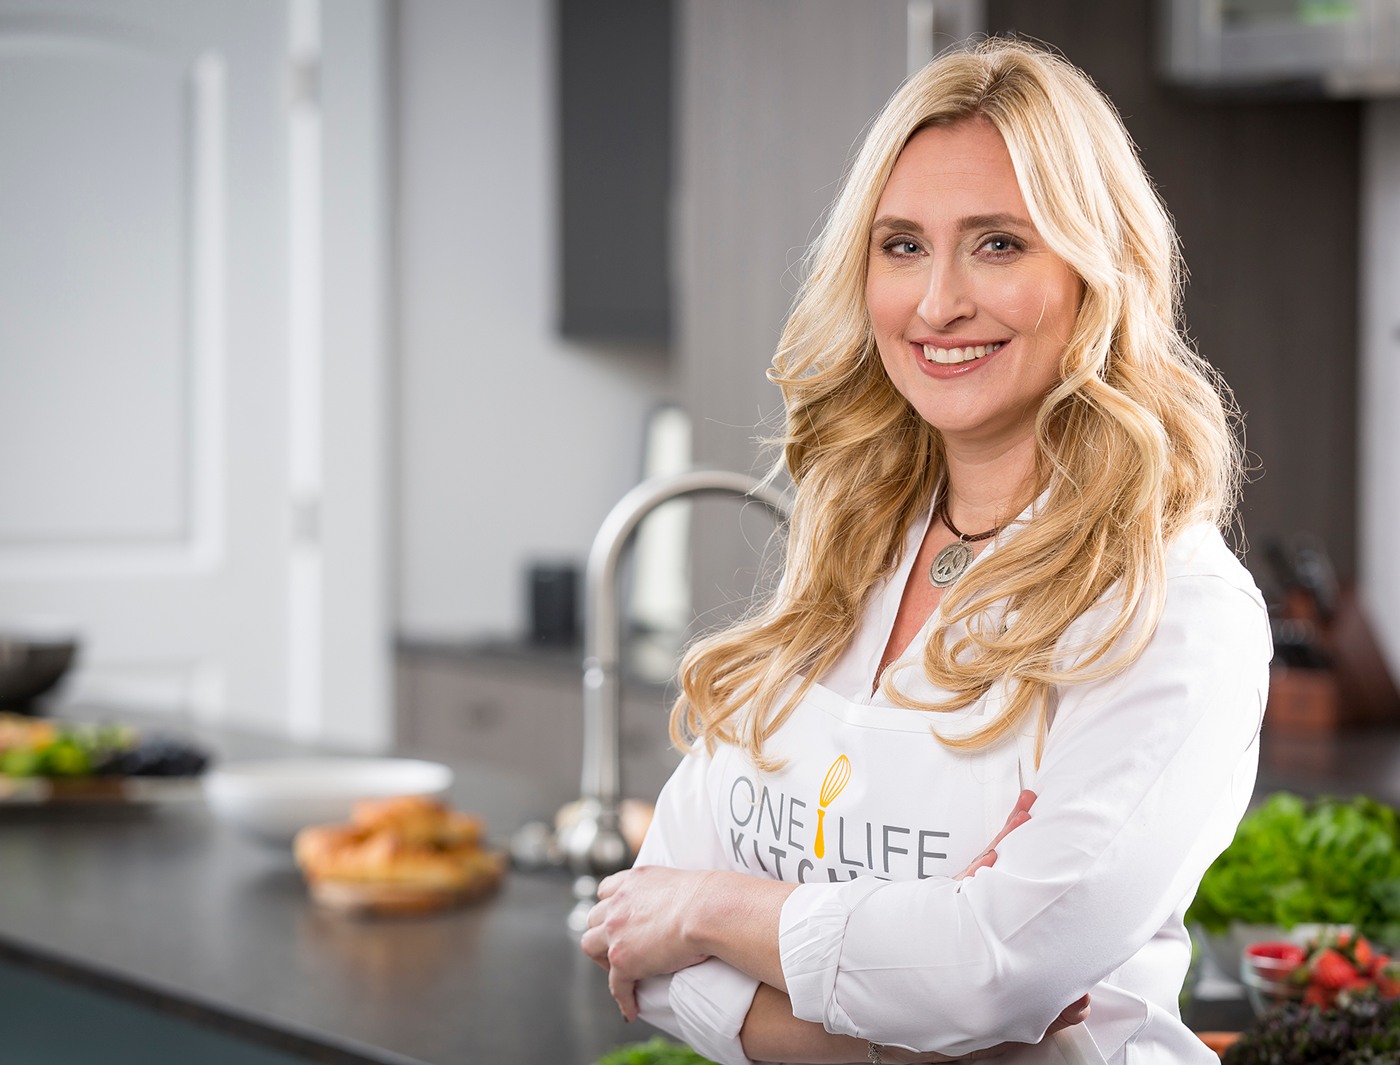 Lauren Brynjelsen - One Life Kitchen